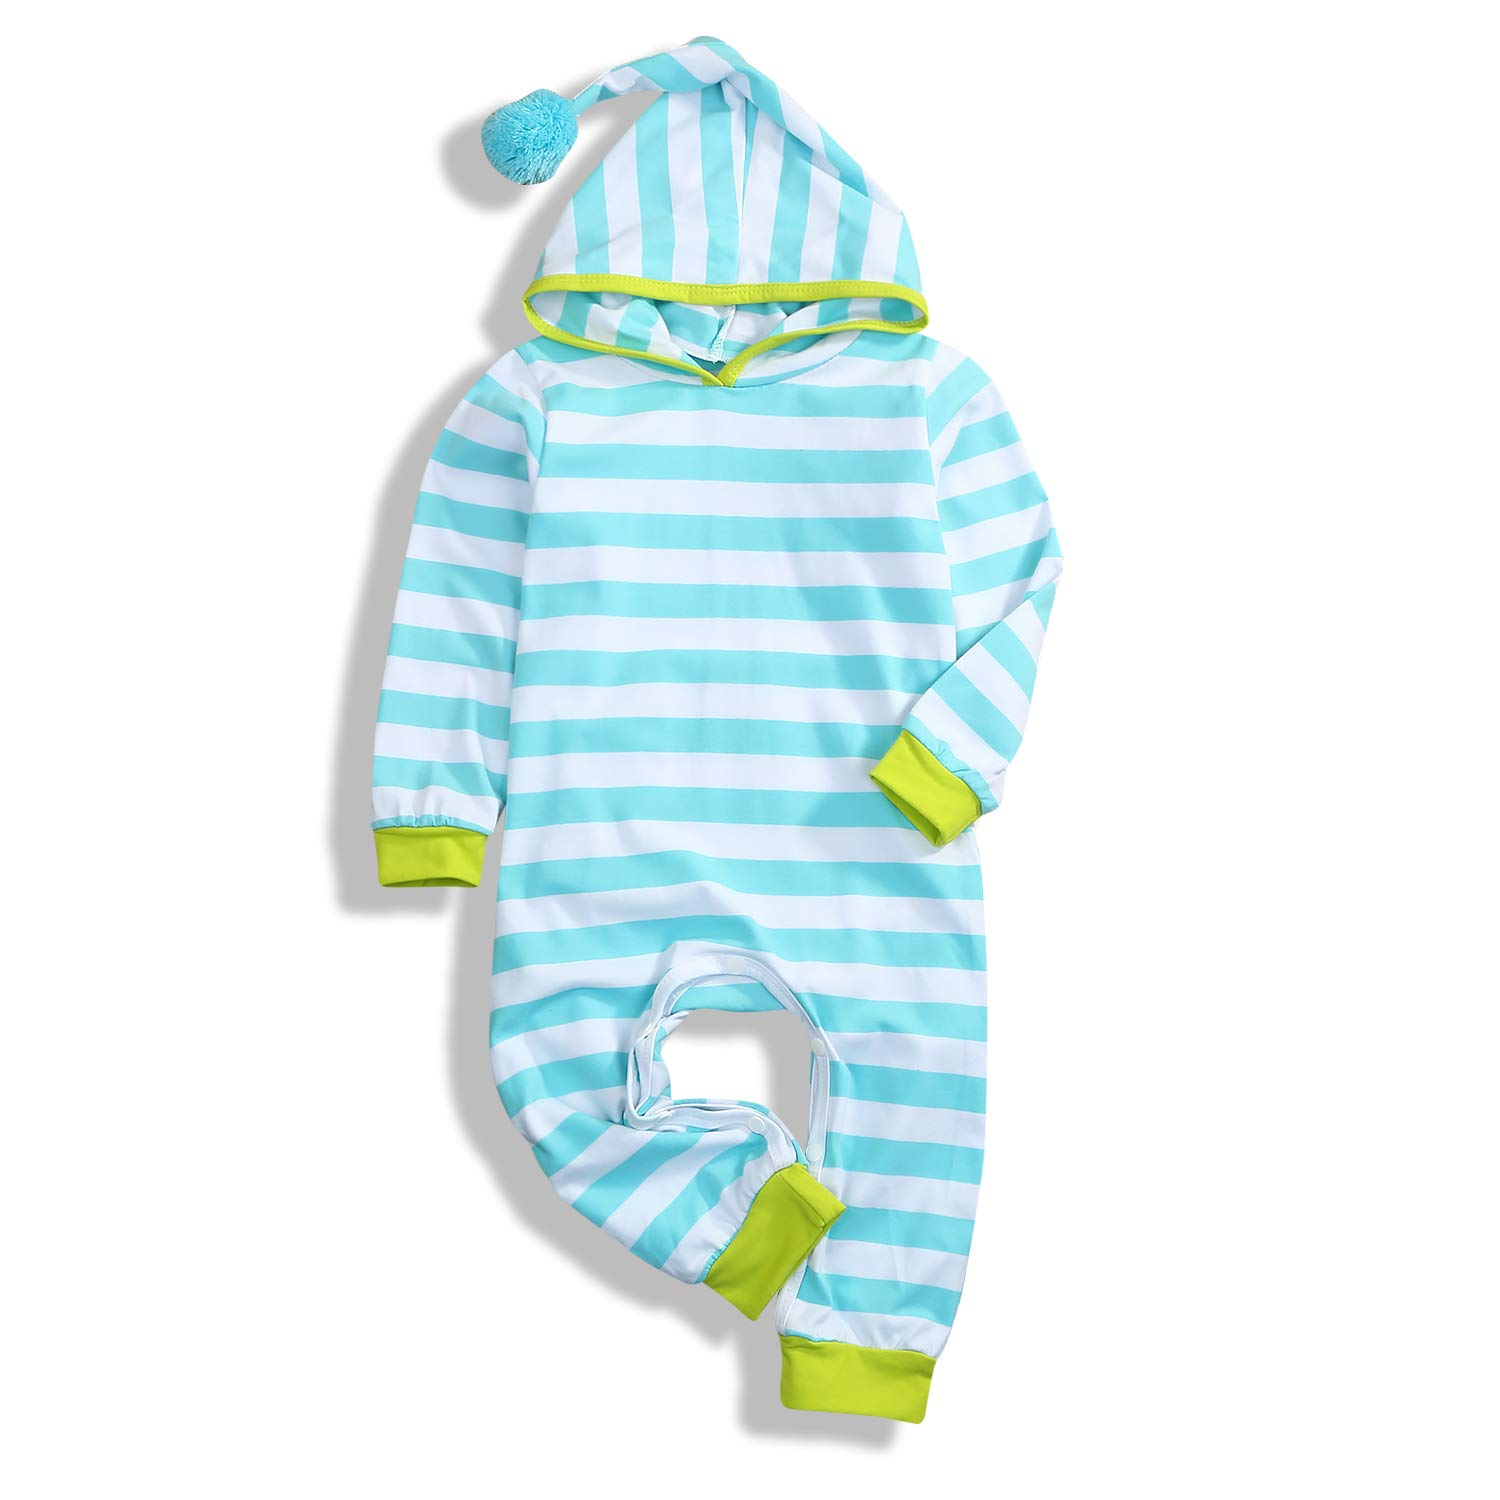 HAPPYMA Baby Boy Girls Stripe Hoodie Outfits Christmas Bodysuit Crawling Suit Newborn Infant Xmas Clothes